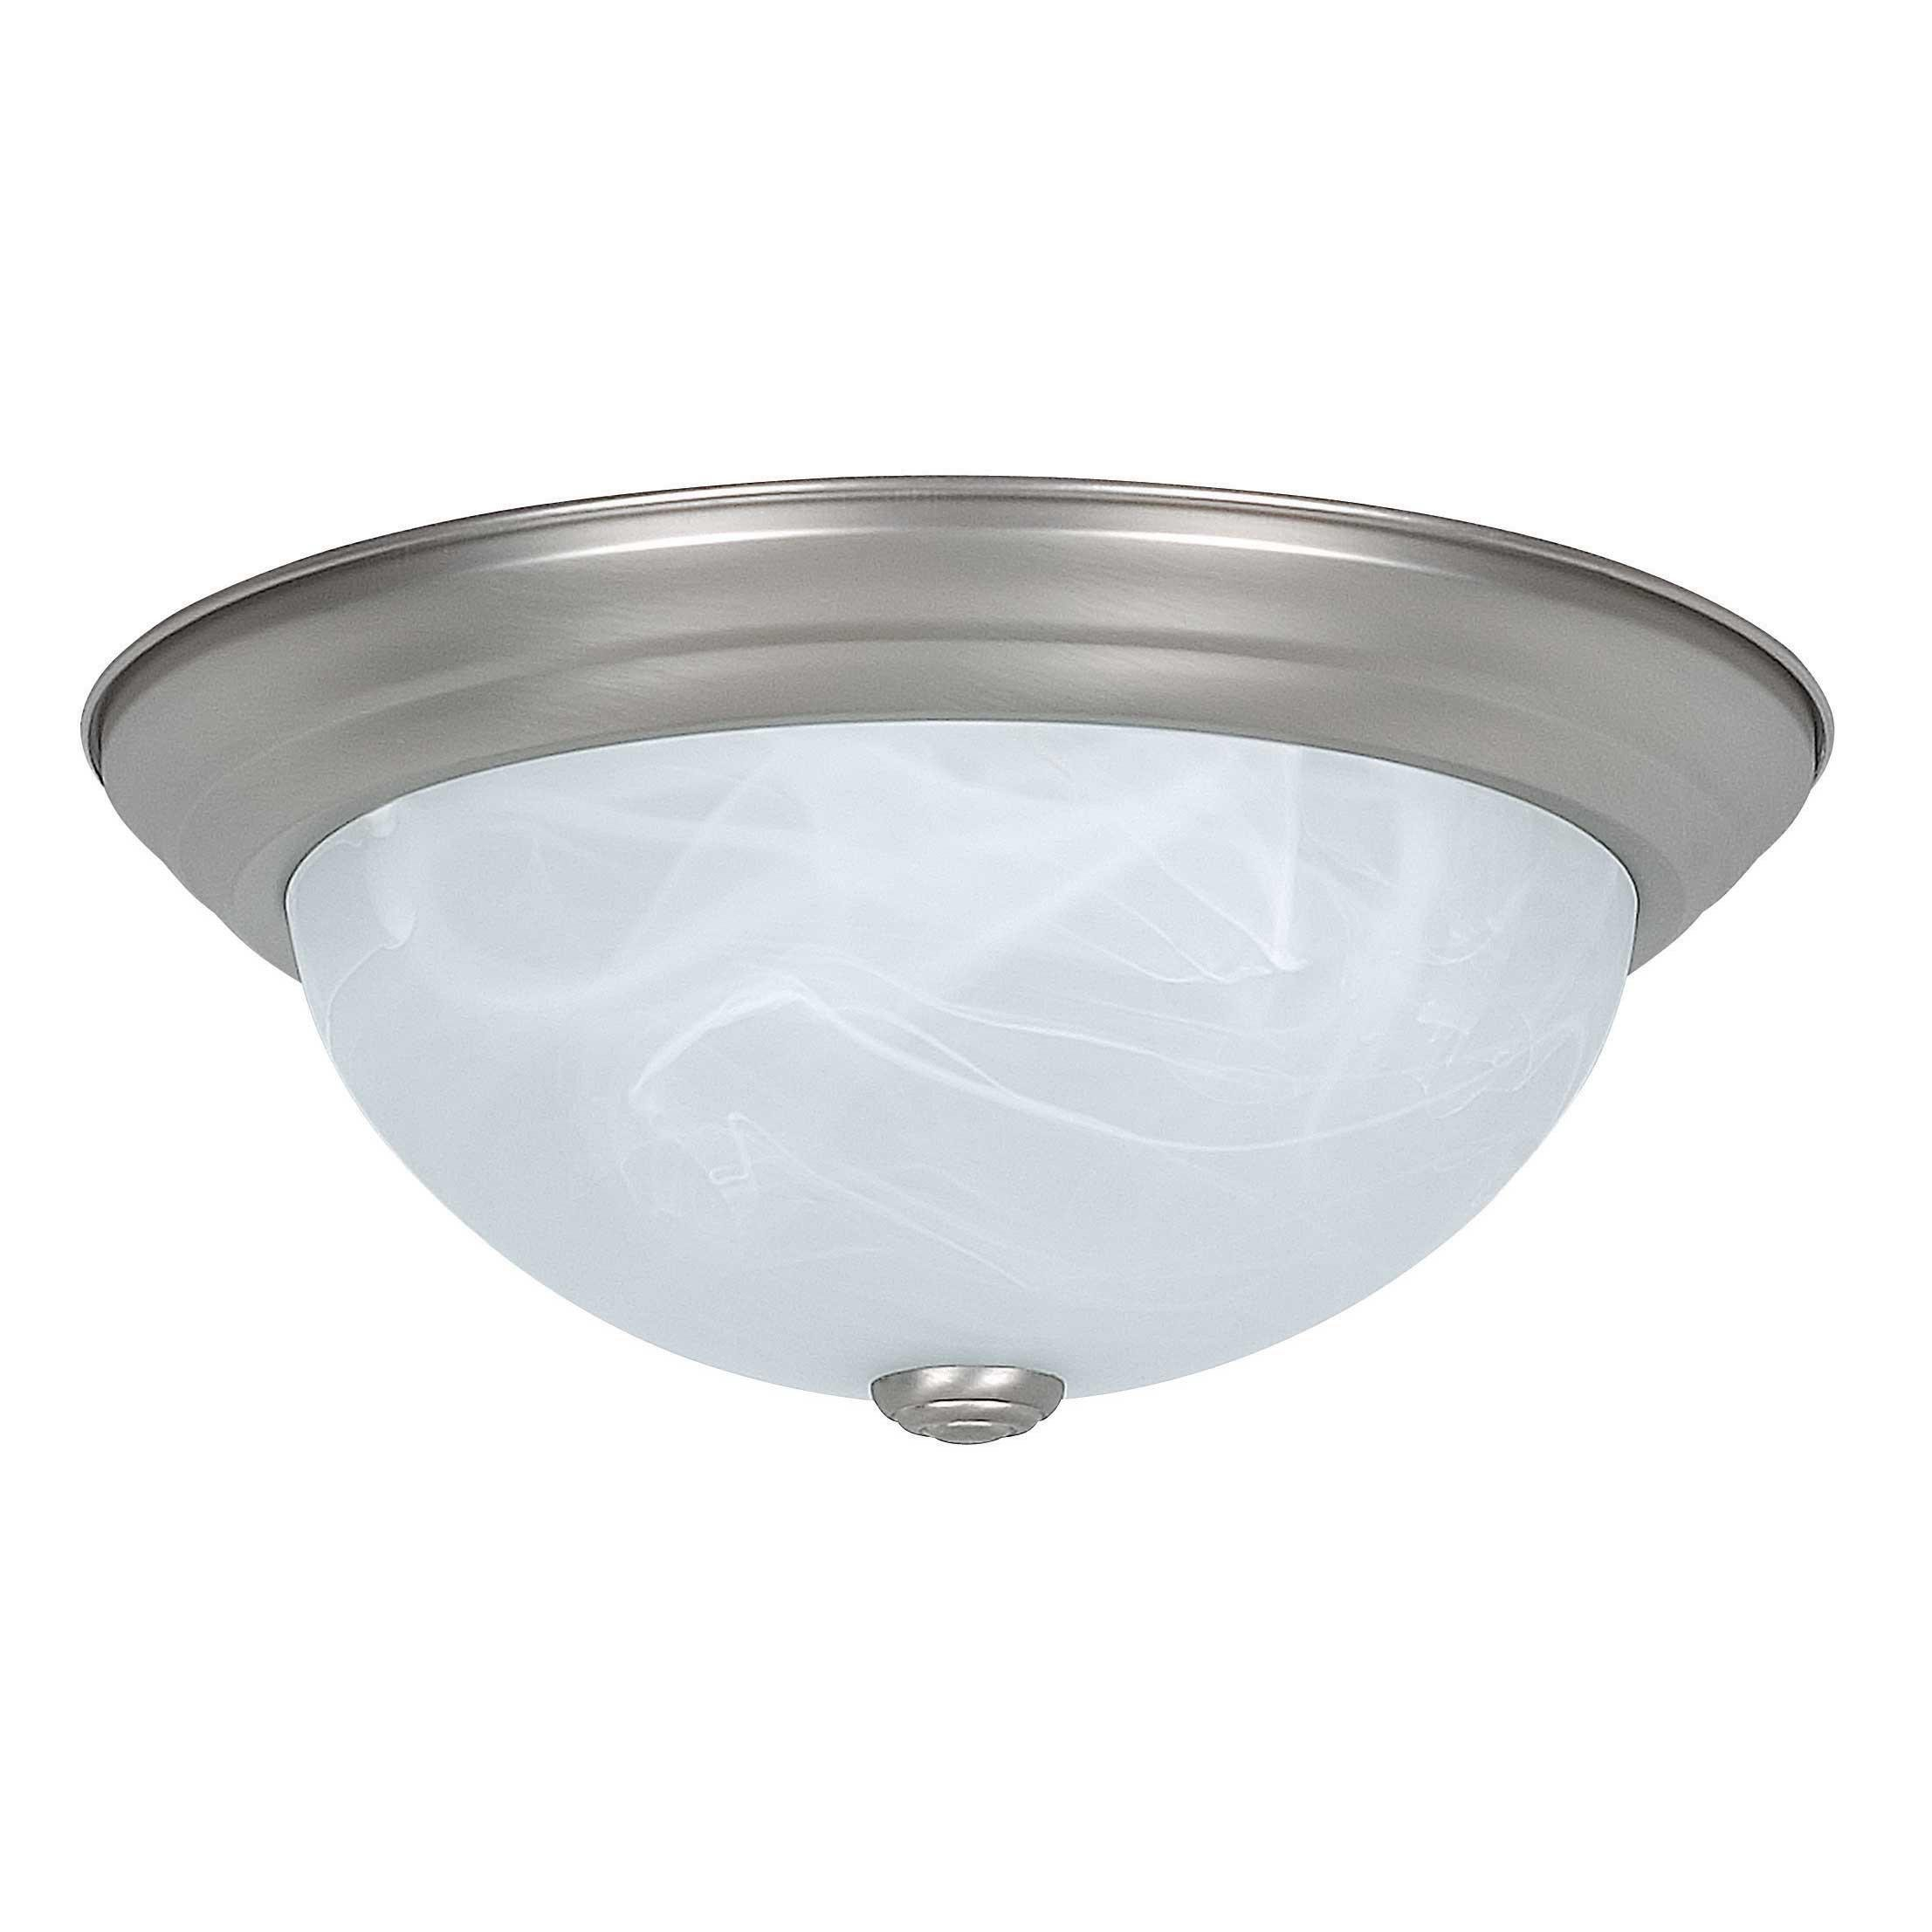 Sunset Lighting F7632-53 Flush Mount with Faux Alabaster Glass, Satin Nickel Finish